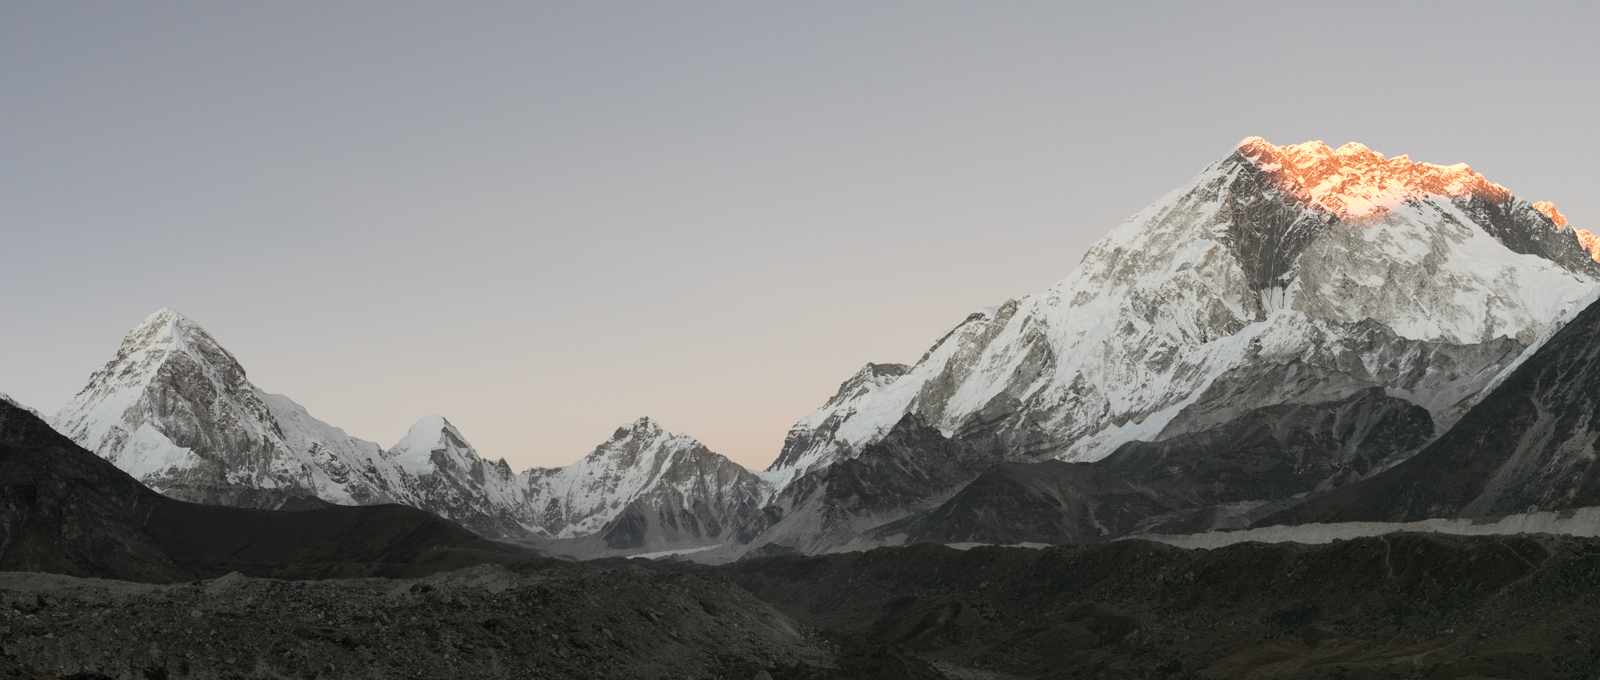 Sunset Light Study #1.  Left to Right: Pumori 7,161 m / 23,494 ft, Lingtren 7,161 m / 23,494 ft, Khumbutse 6,636 m / 21,772 ft, Nuptse 7,861 m / 25,791 ft.